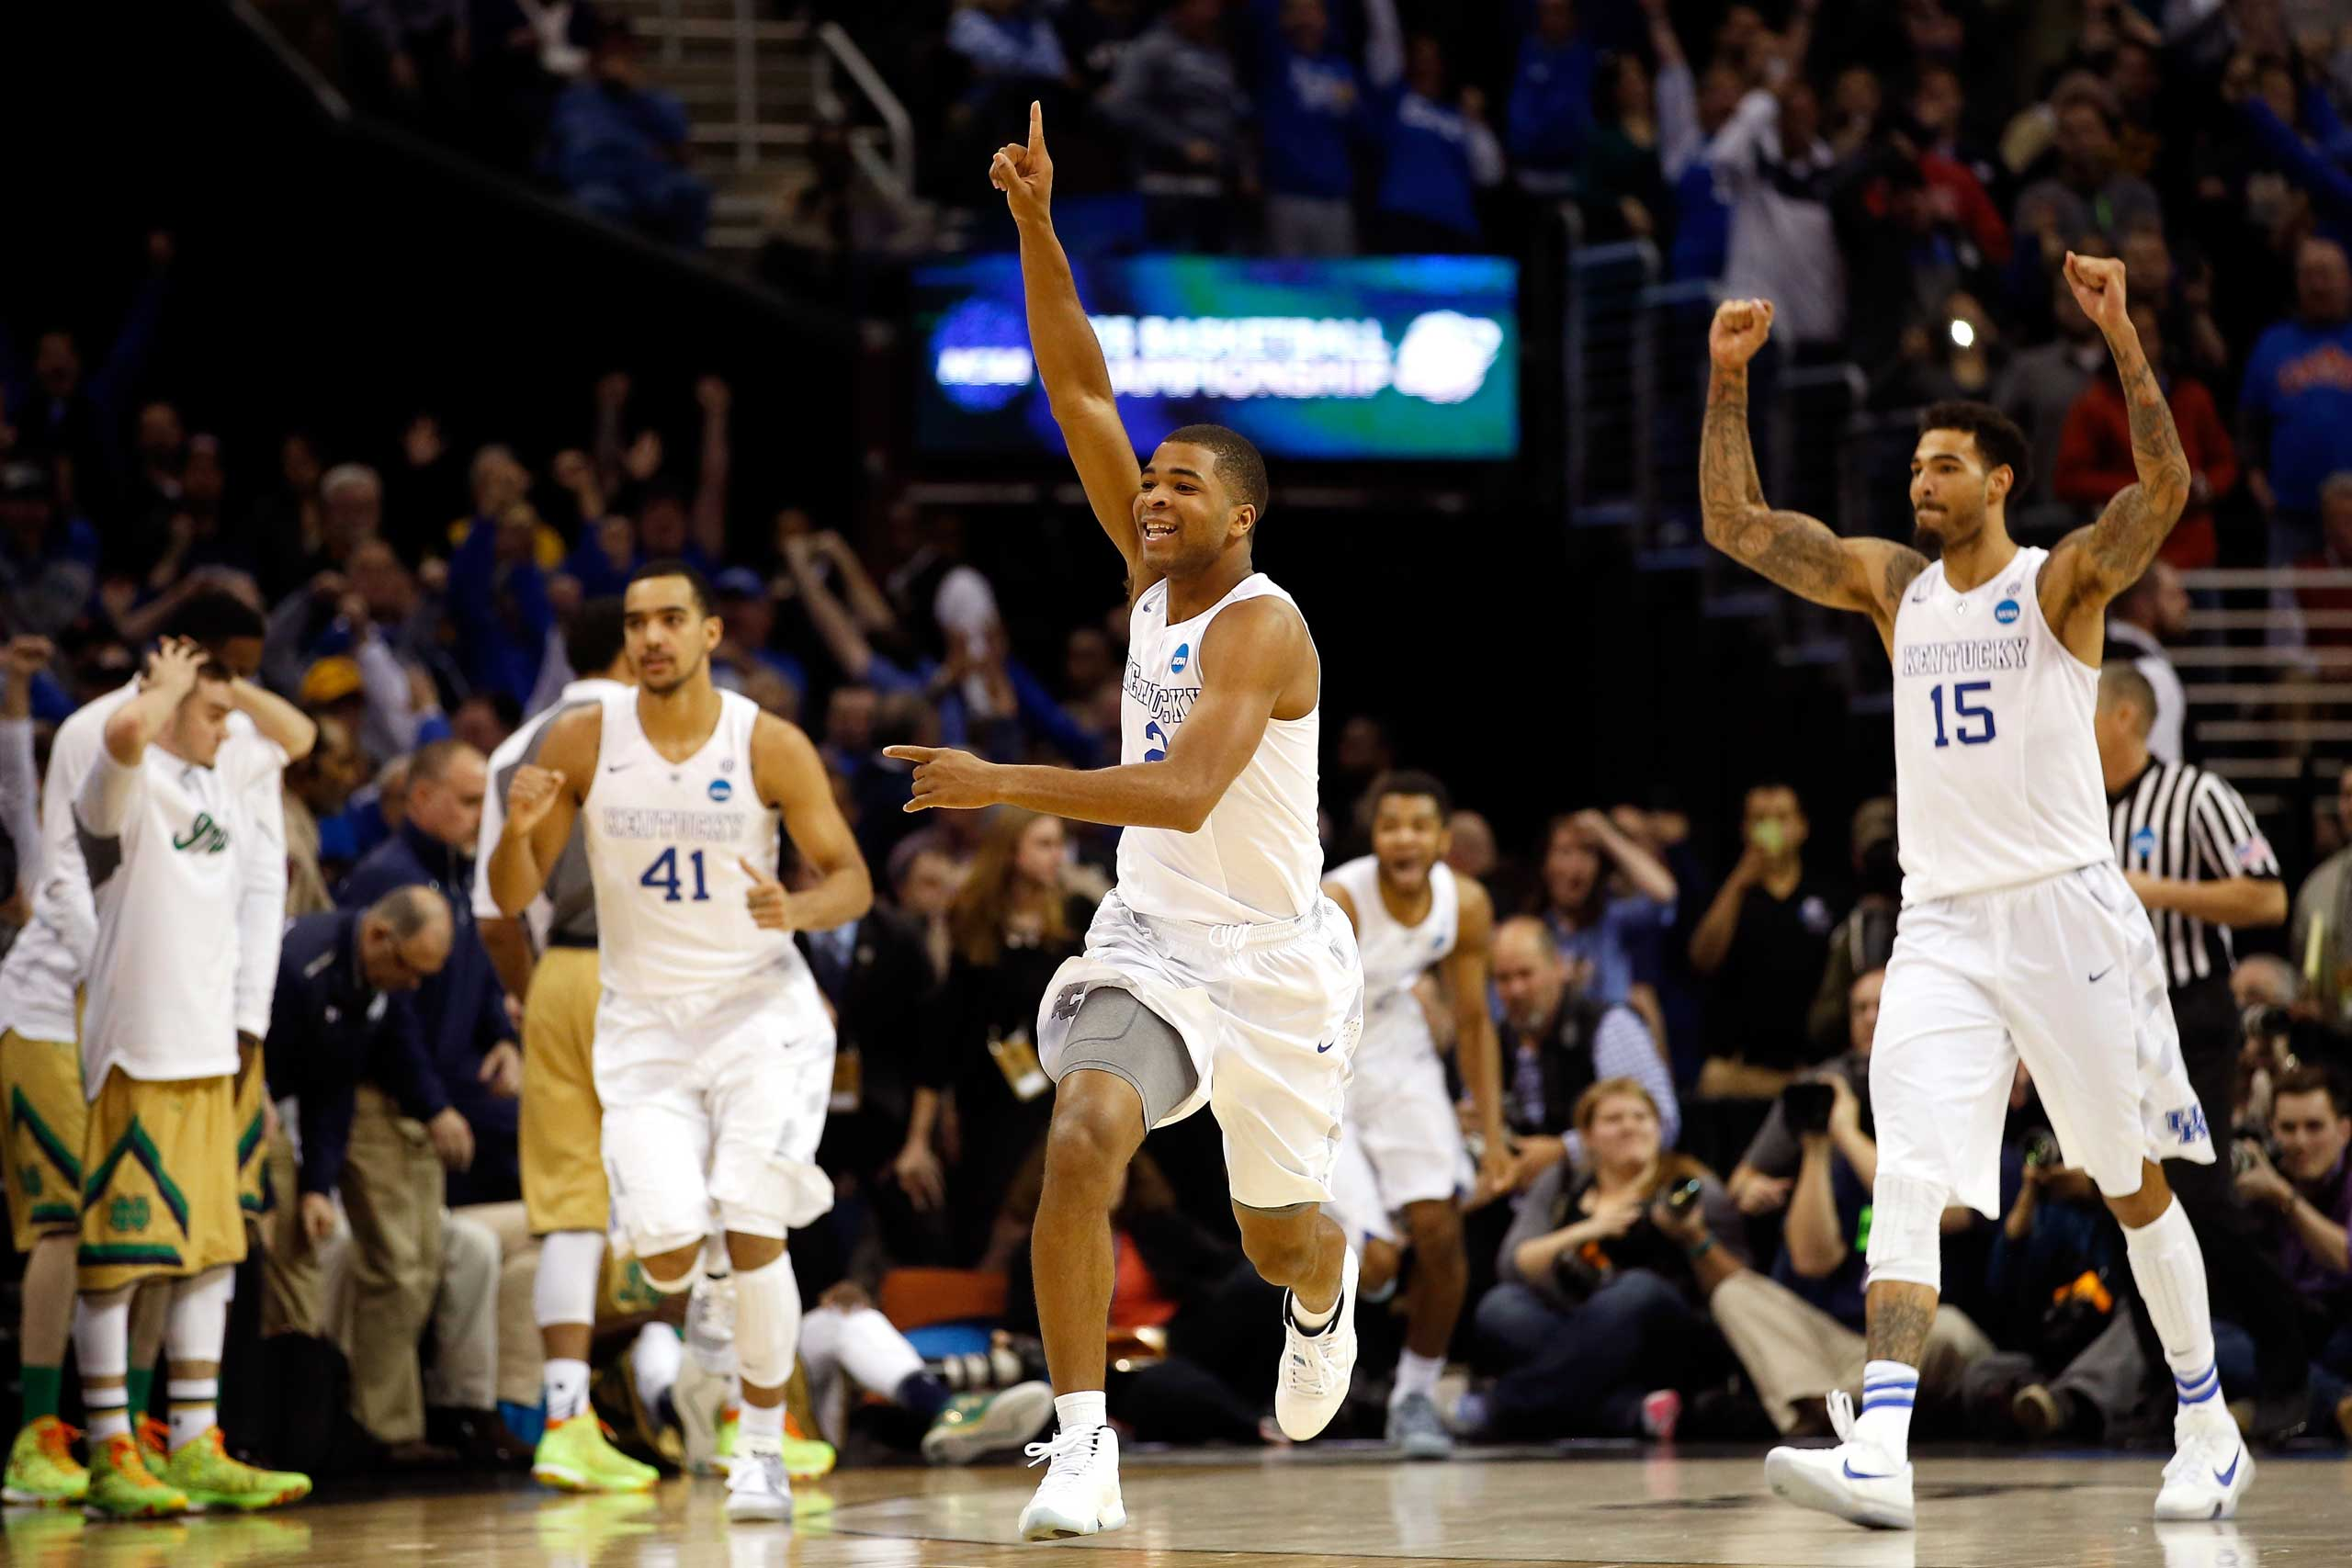 Aaron Harrison of the Kentucky Wildcats celebrates after defeating the Notre Dame Fighting Irish during the Midwest Regional Final of the 2015 NCAA Men's Basketball tournament at Quicken Loans Arena in Cleveland, on Mar. 28, 2015.